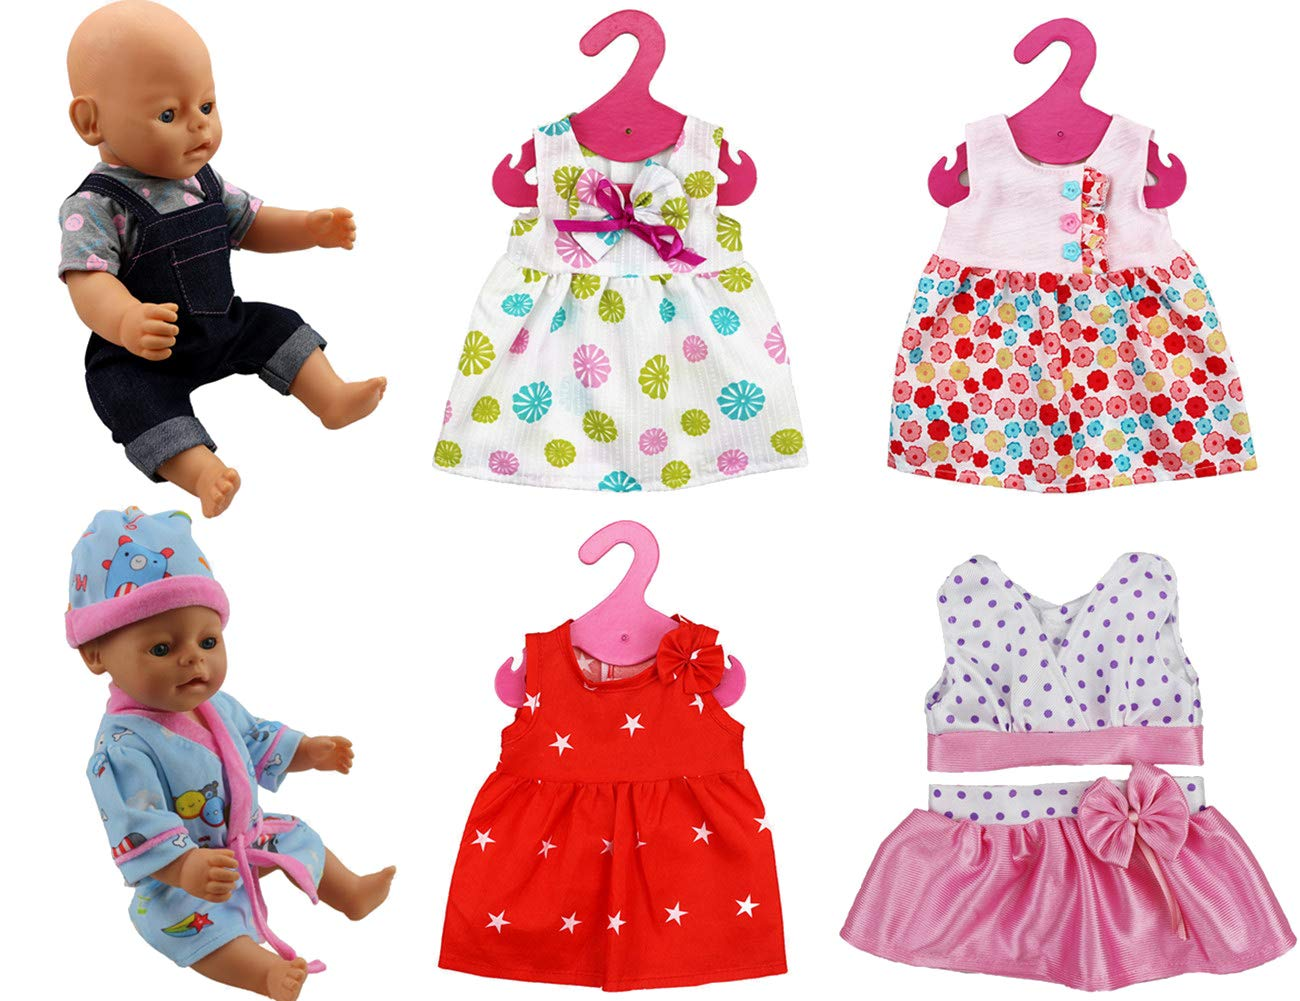 XADP 6 Sets Doll Clothes Outfits Dresses Clothing for 14 to 16 Inch New Born Baby Dolls, Bitty Baby Dolls and 18 Inch American Girl Doll